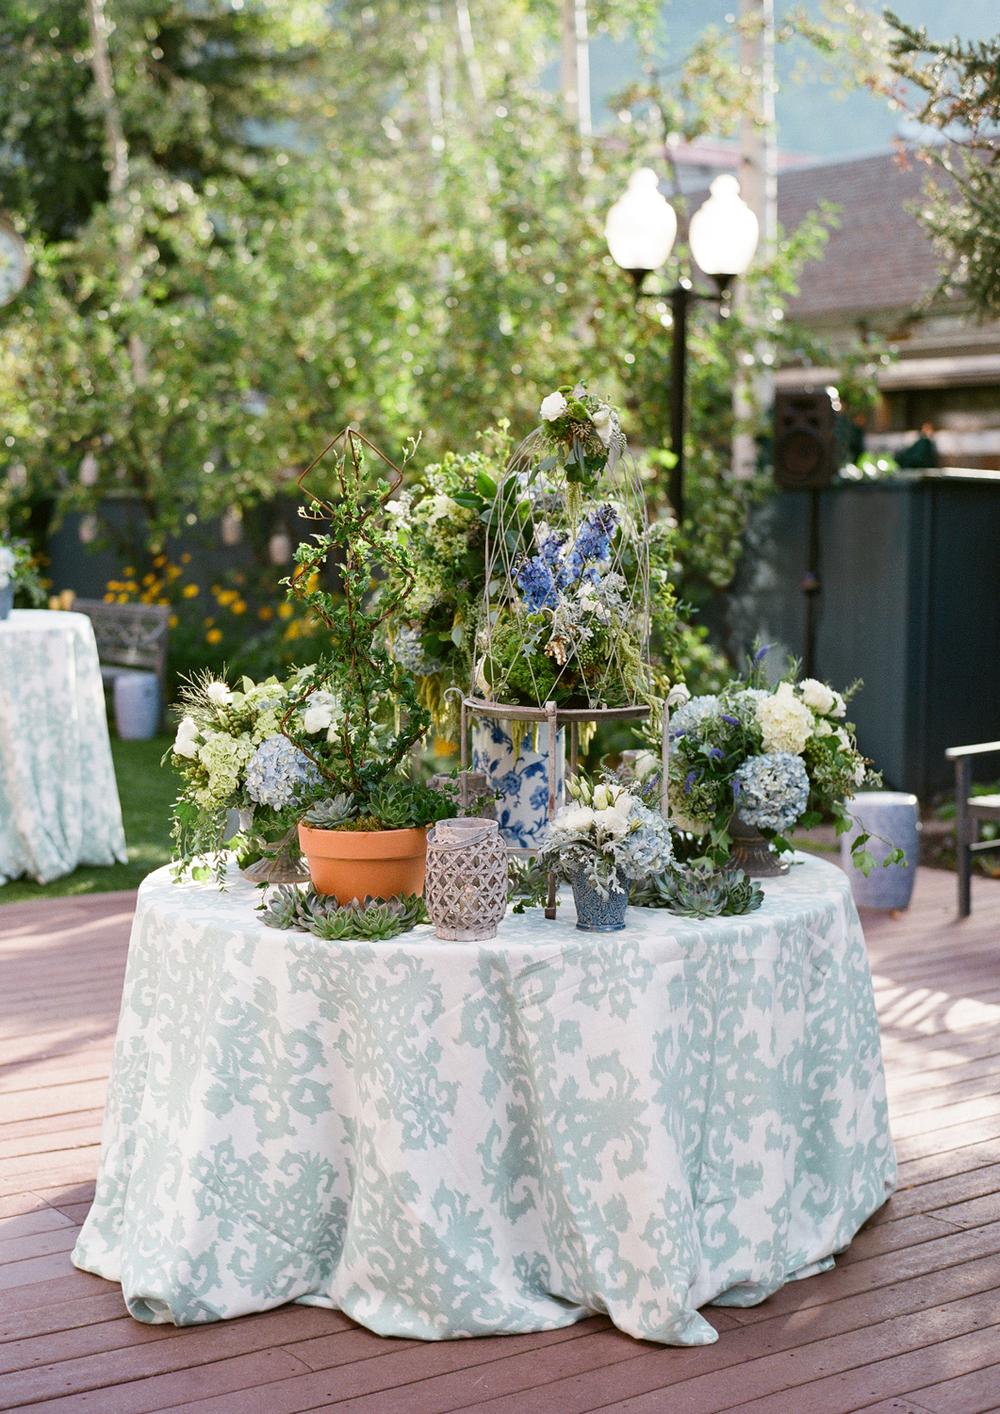 Table with blue, white, green flower arrangements